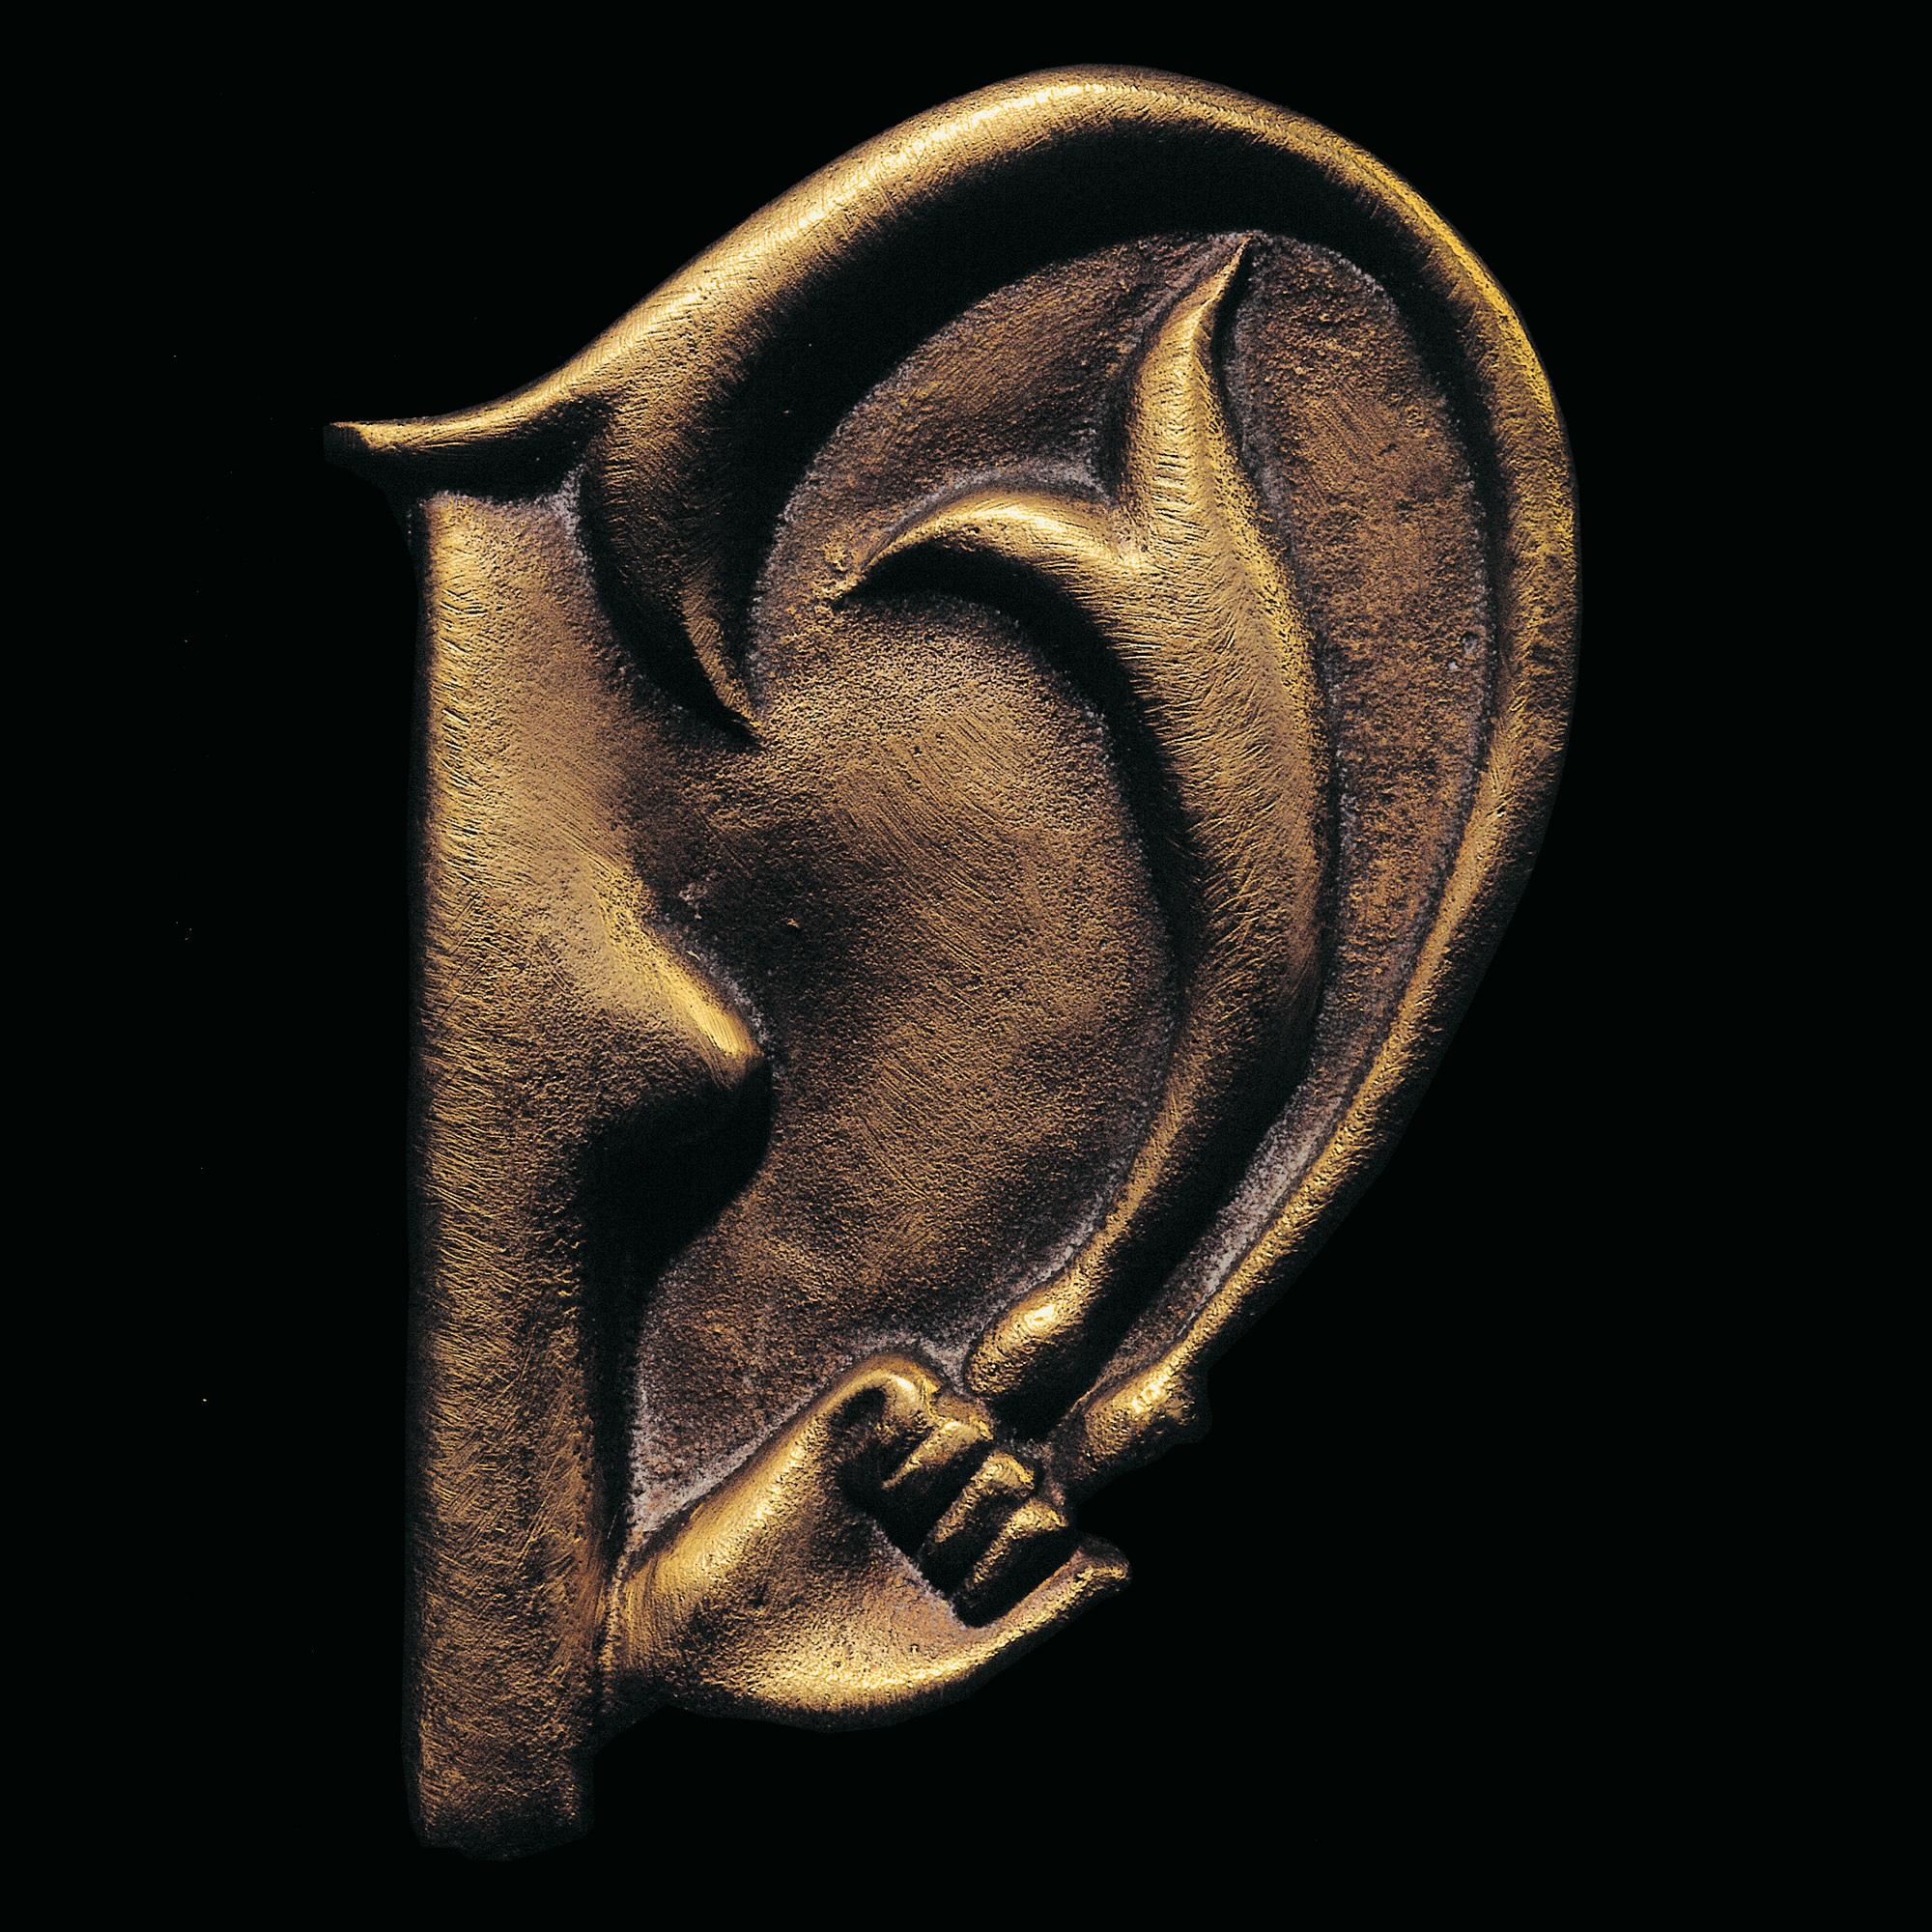 The Ear of Giacometti, 1977, Bronze Sculpture, 20th Century Surrealism